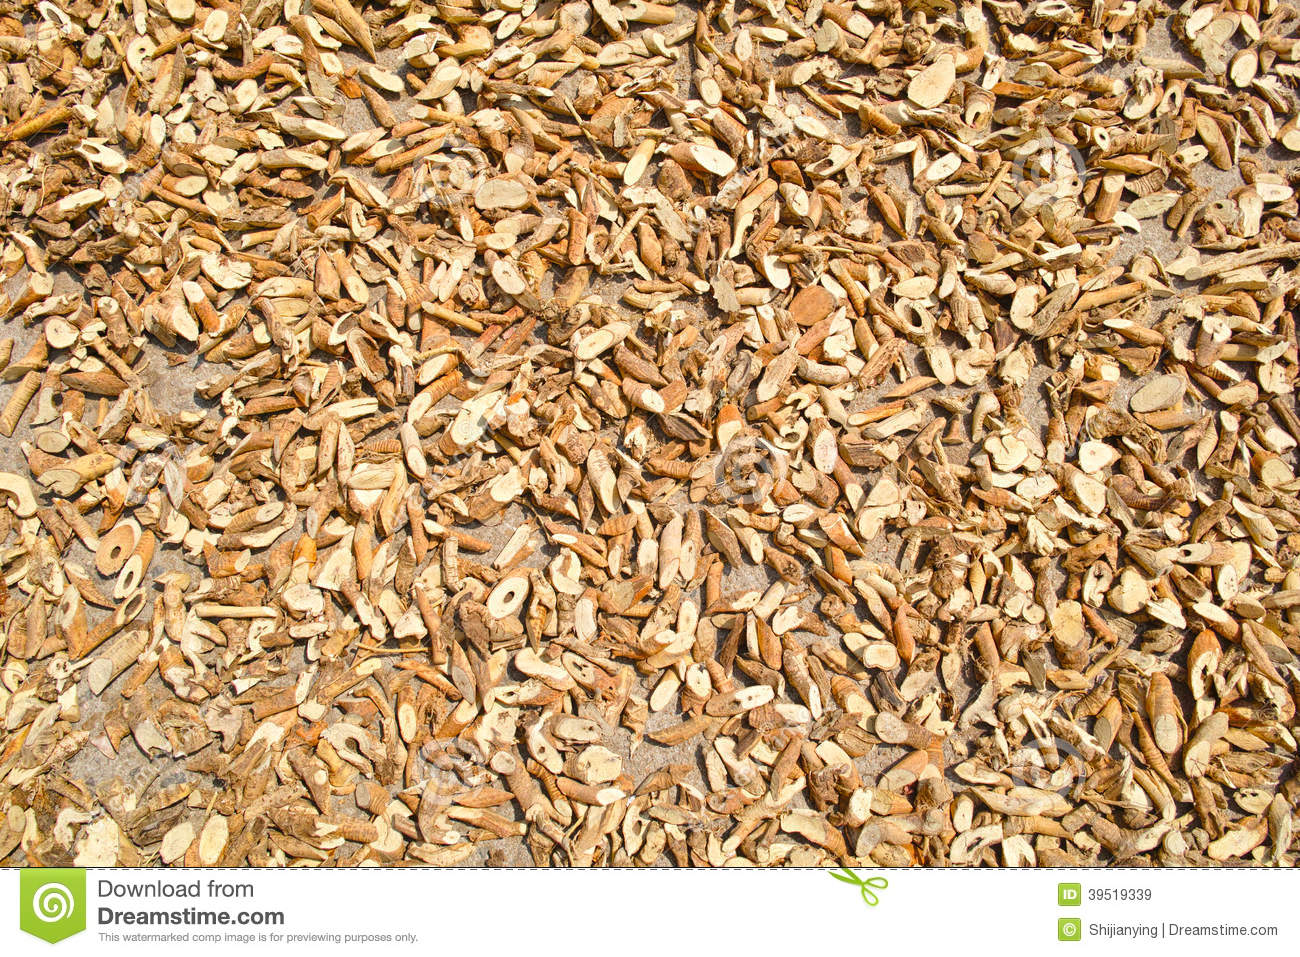 Name Root: Root Pieces Of Moghania Stock Photo